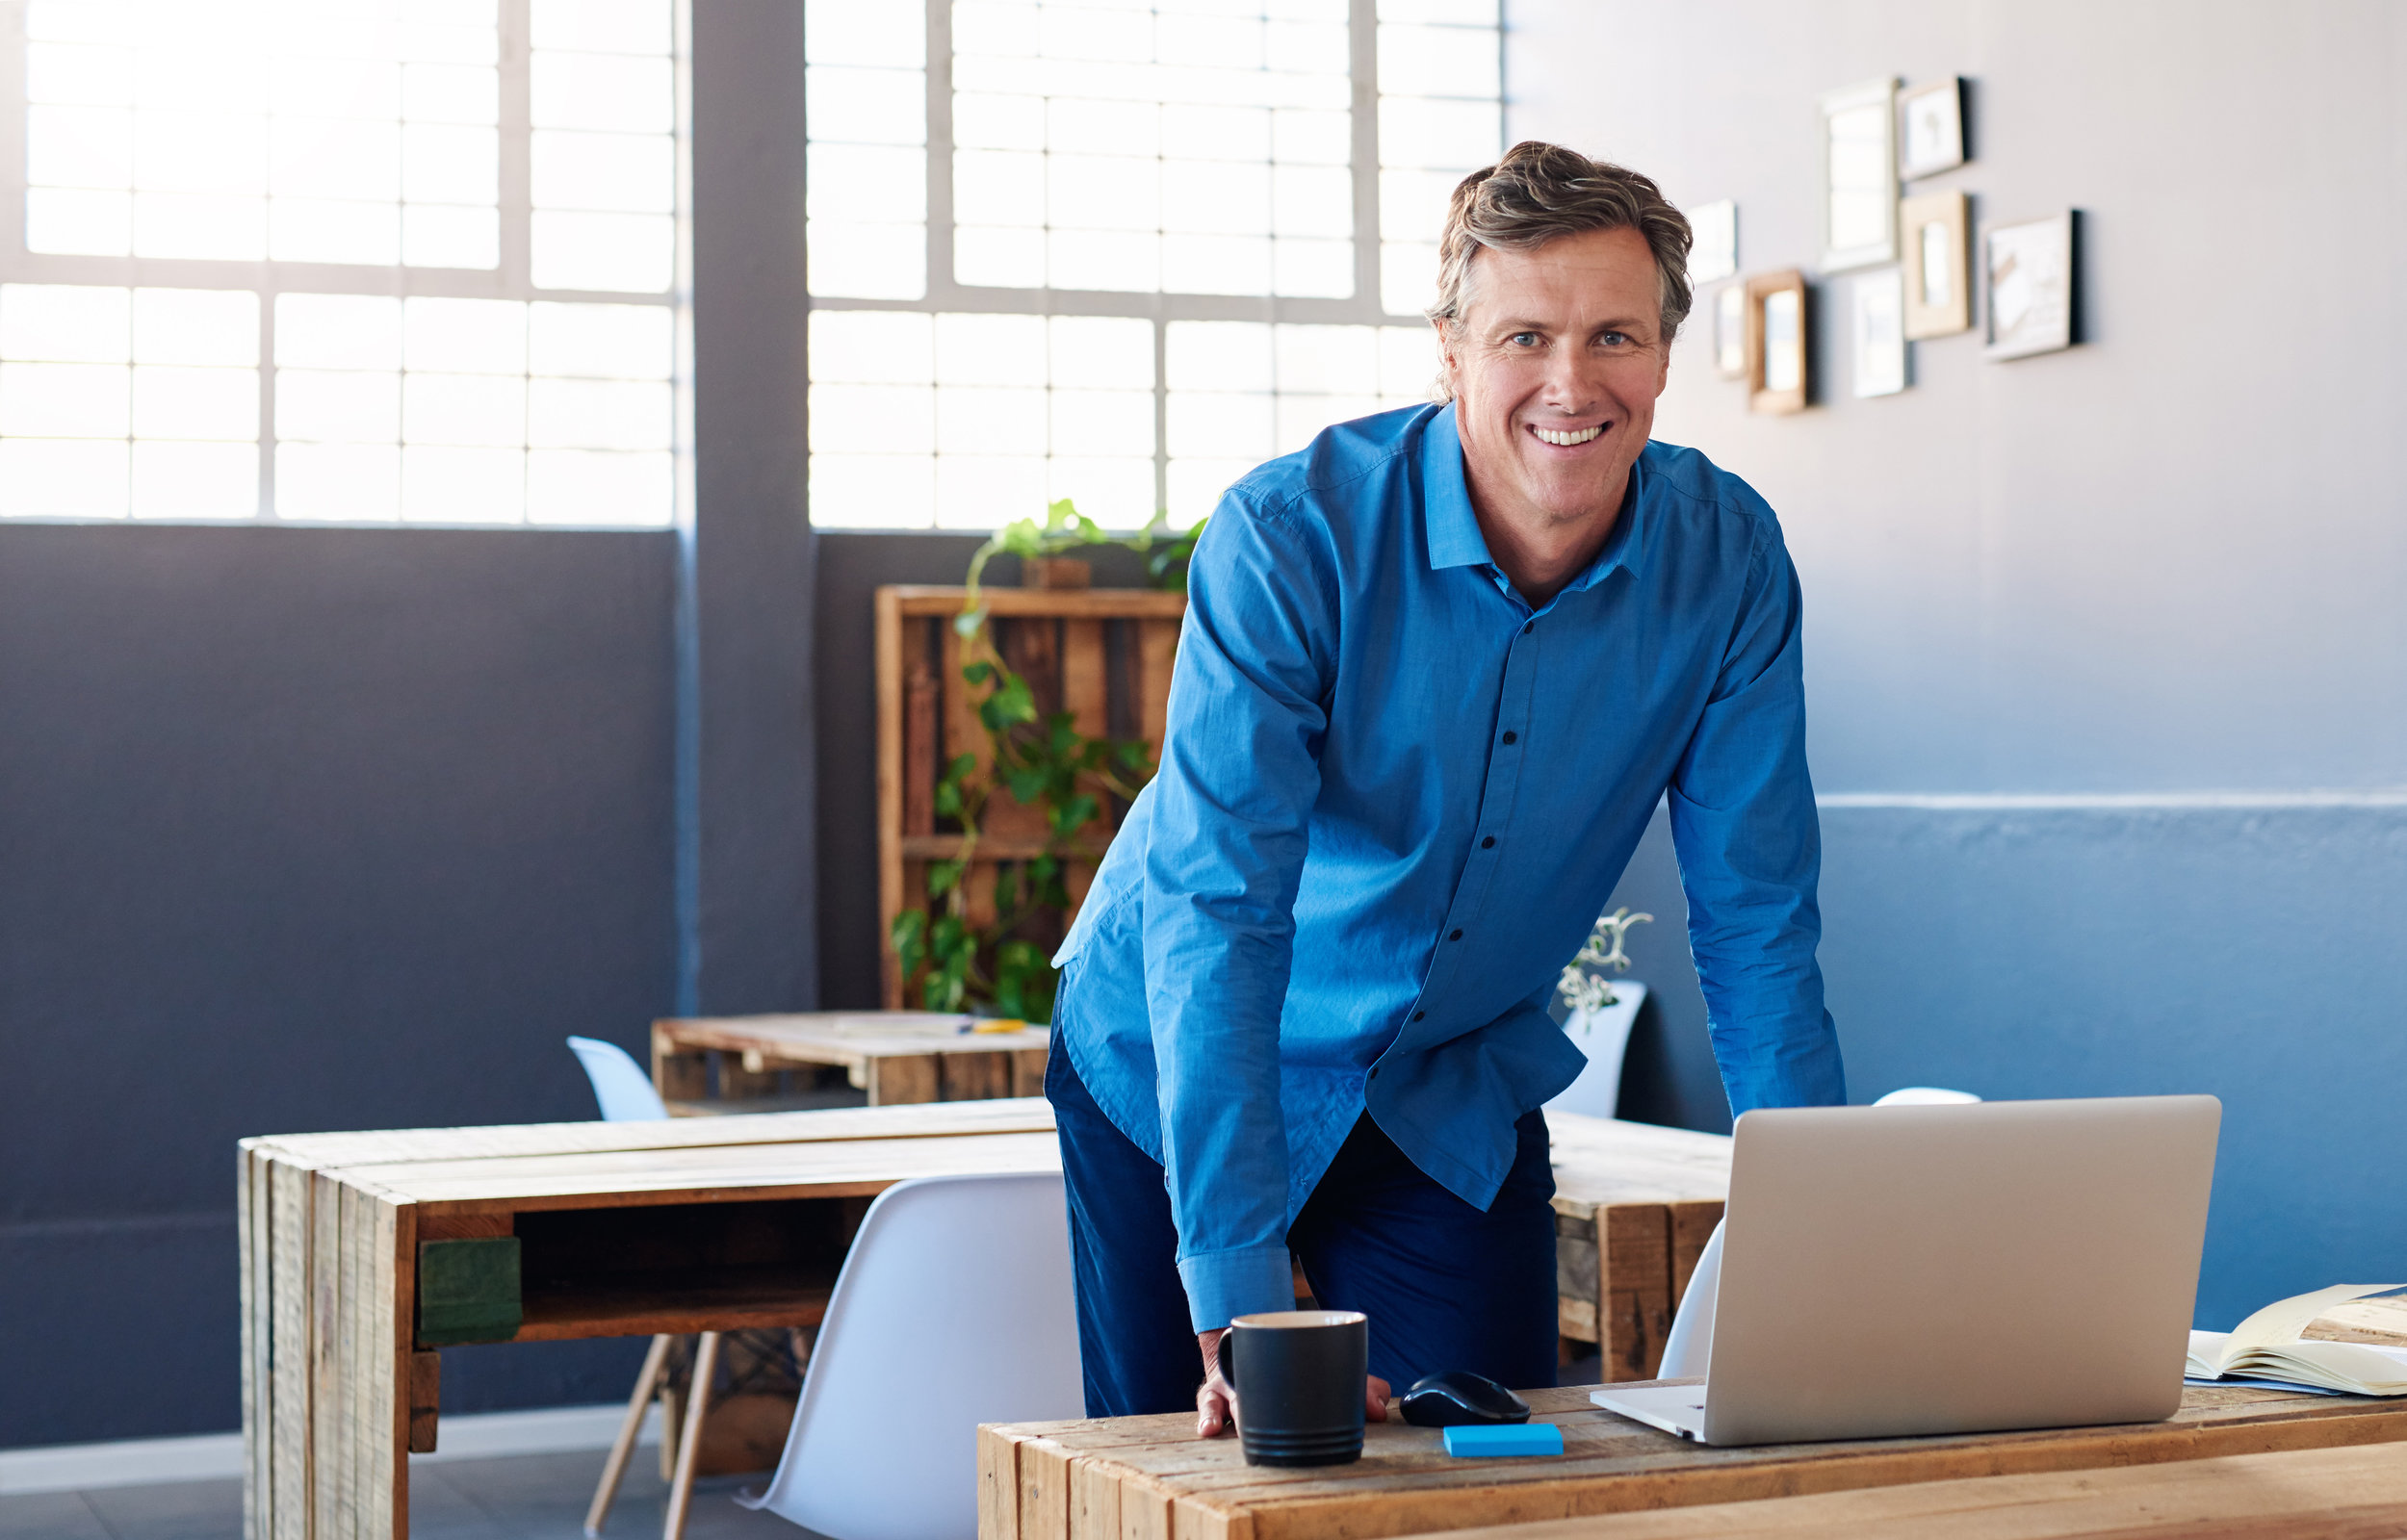 Smiling mature businessman leaning on his desk in an office